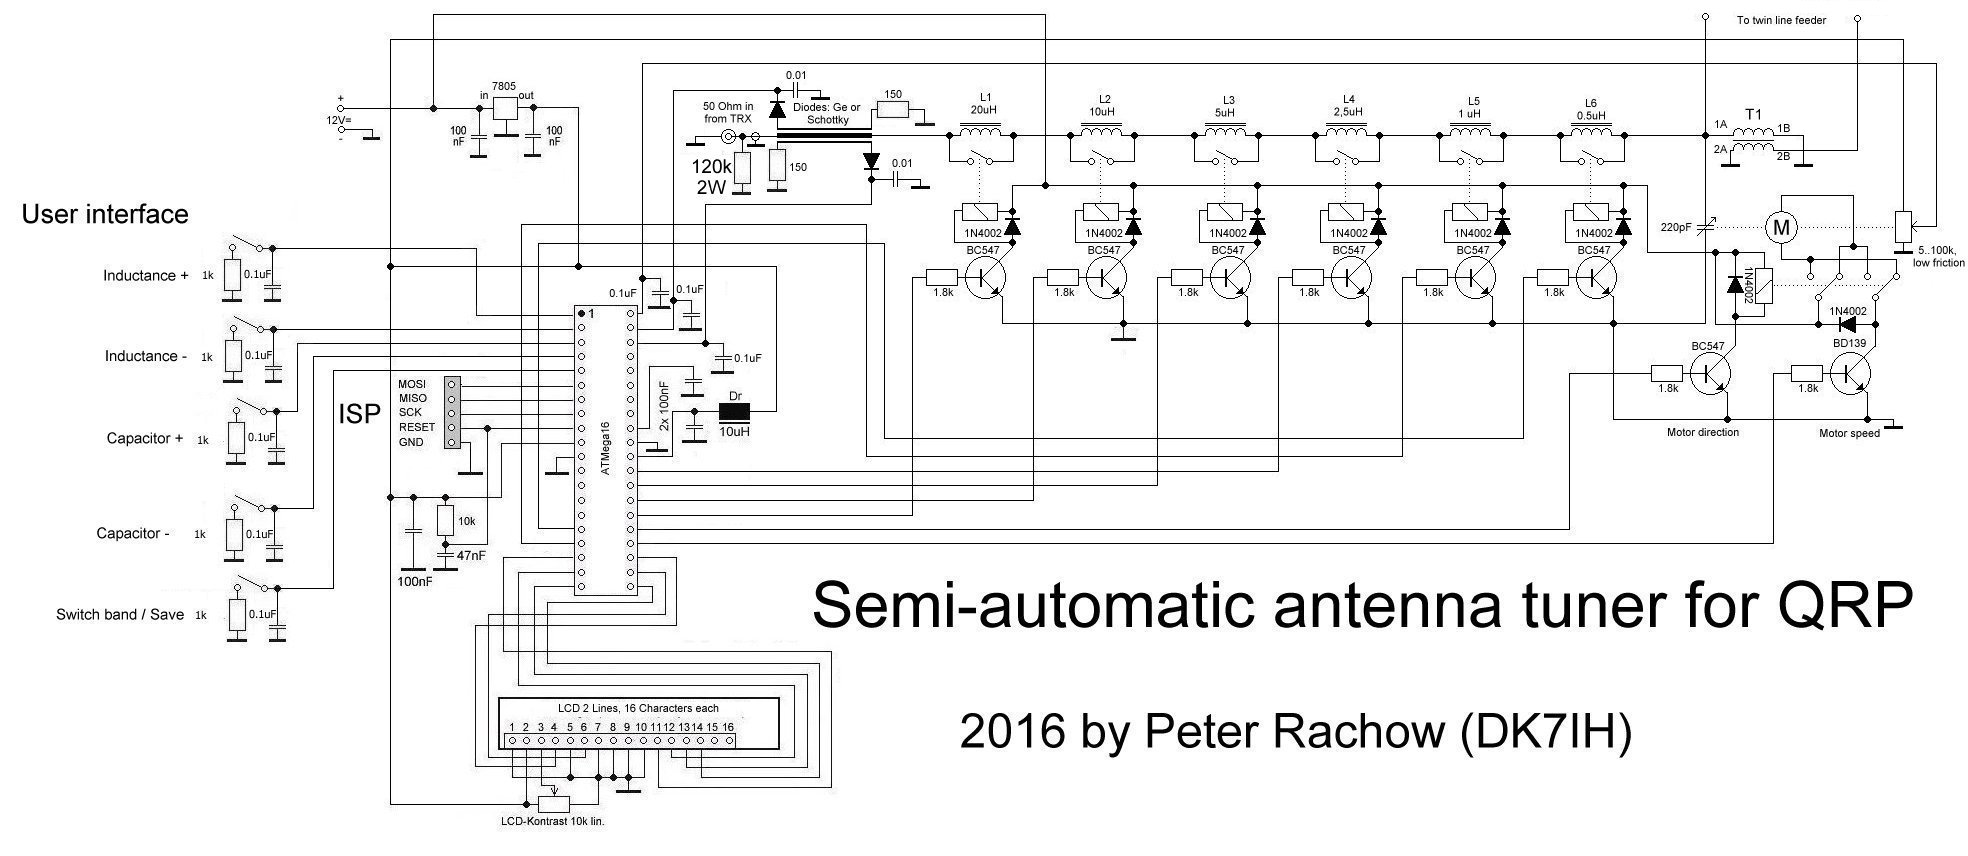 hight resolution of semi automatic antenna tuner for qrp c 2016 by peter rachow dk7ih